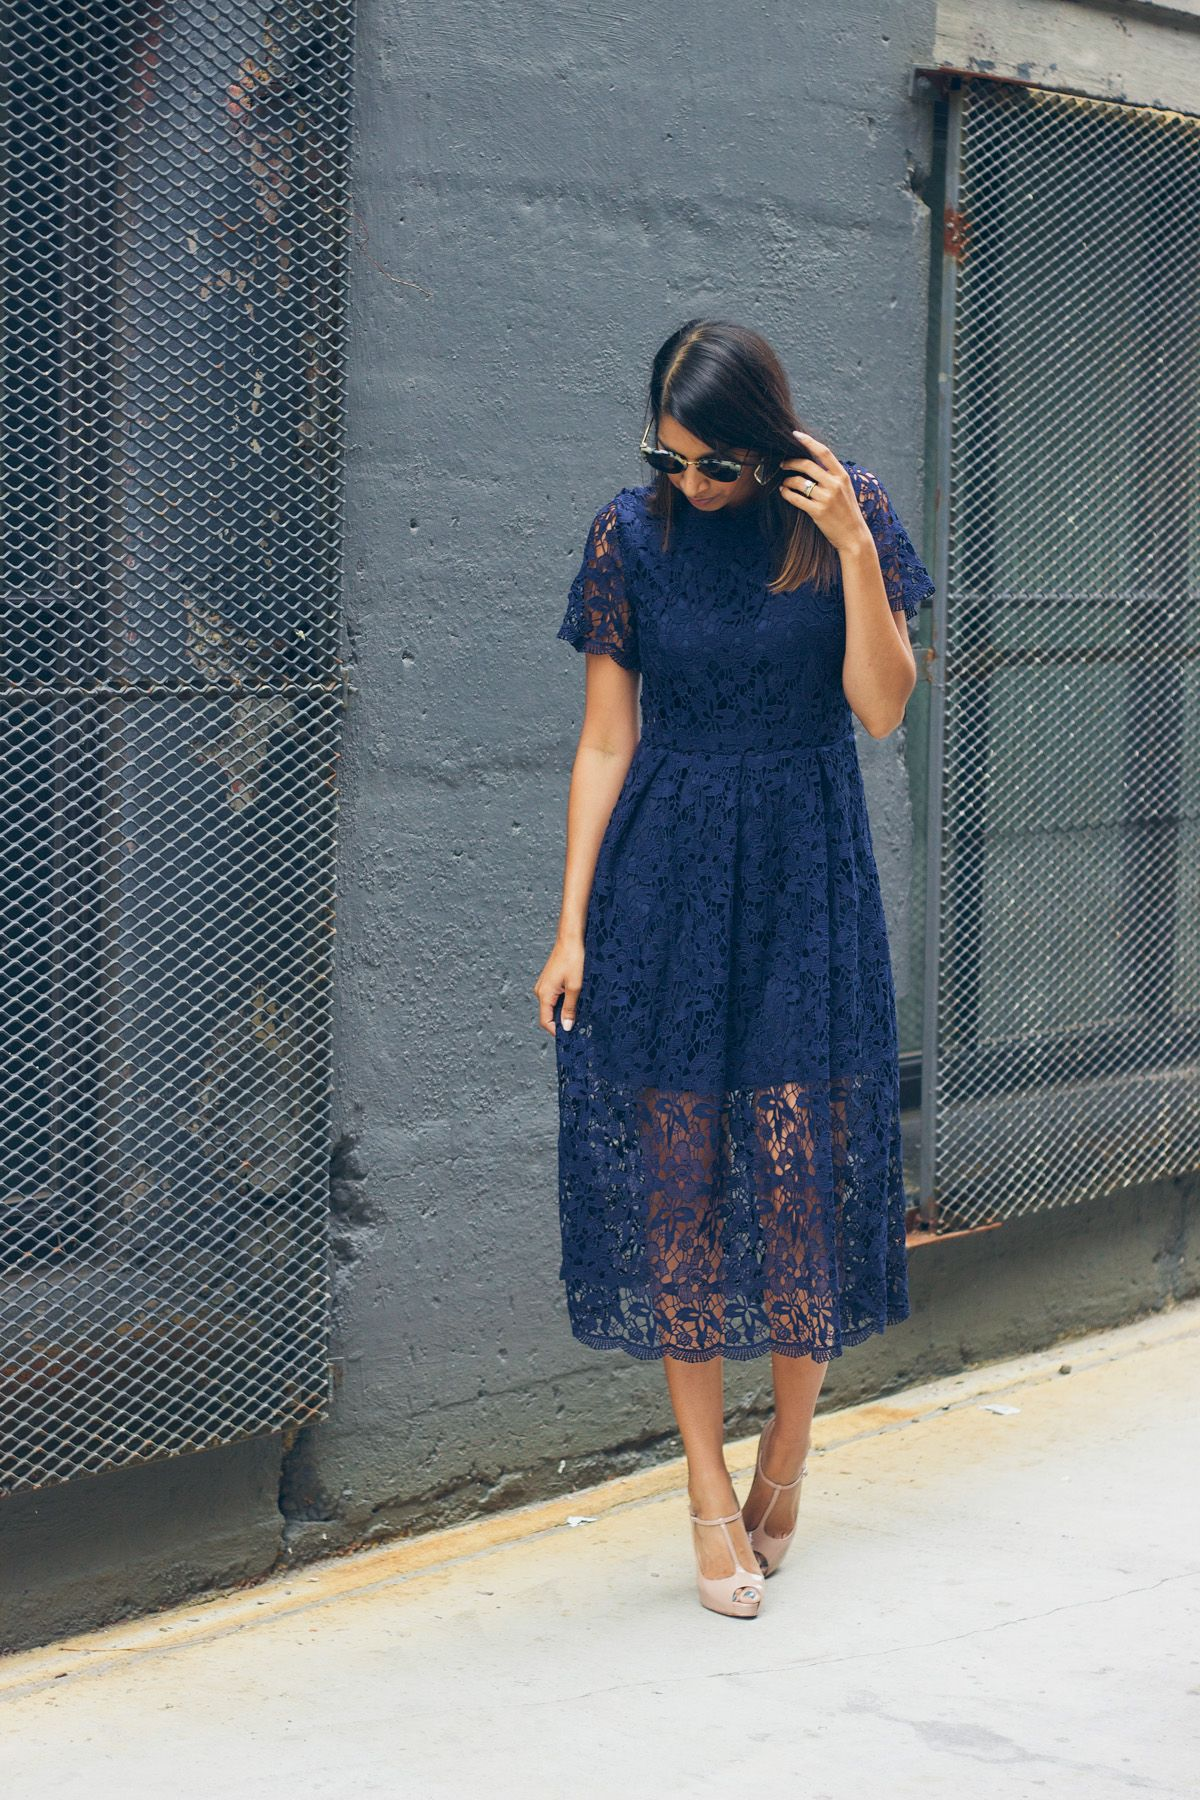 Winter wedding guest lace dresses for Navy dress for fall wedding